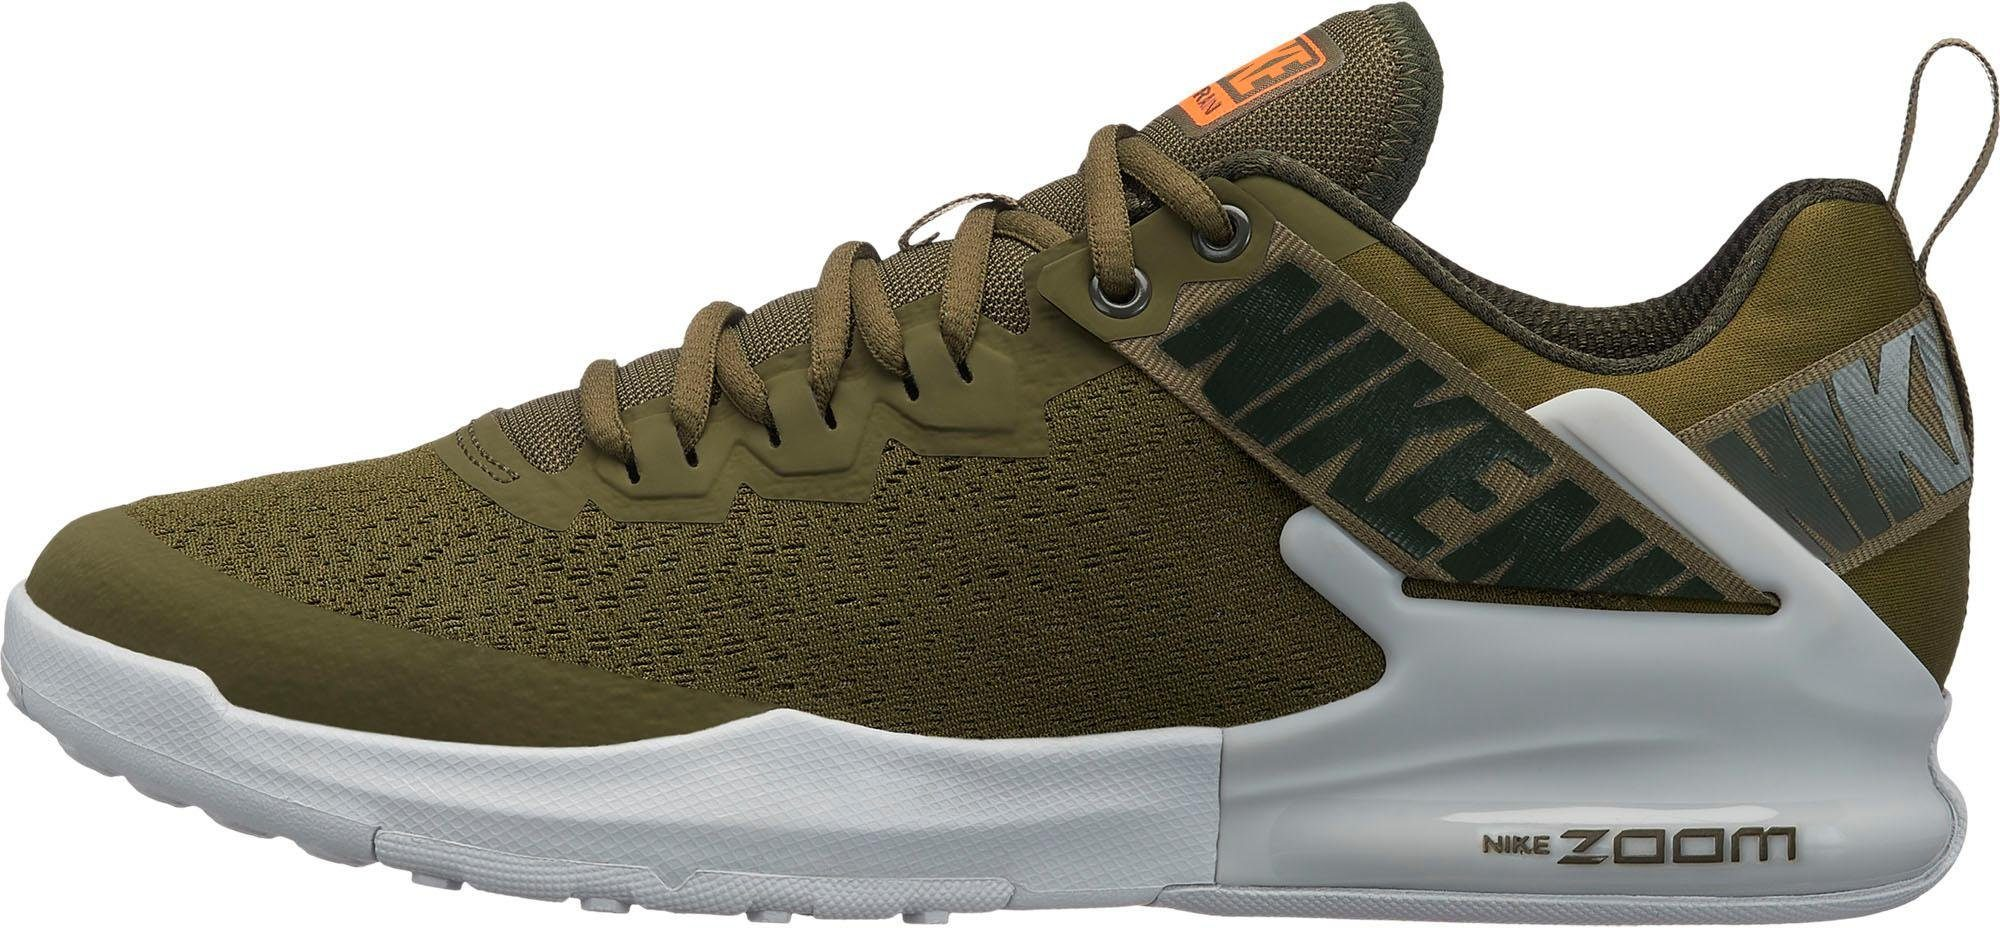 Nike »Zoom Domination Trainer 2« Trainingsschuh | OTTO